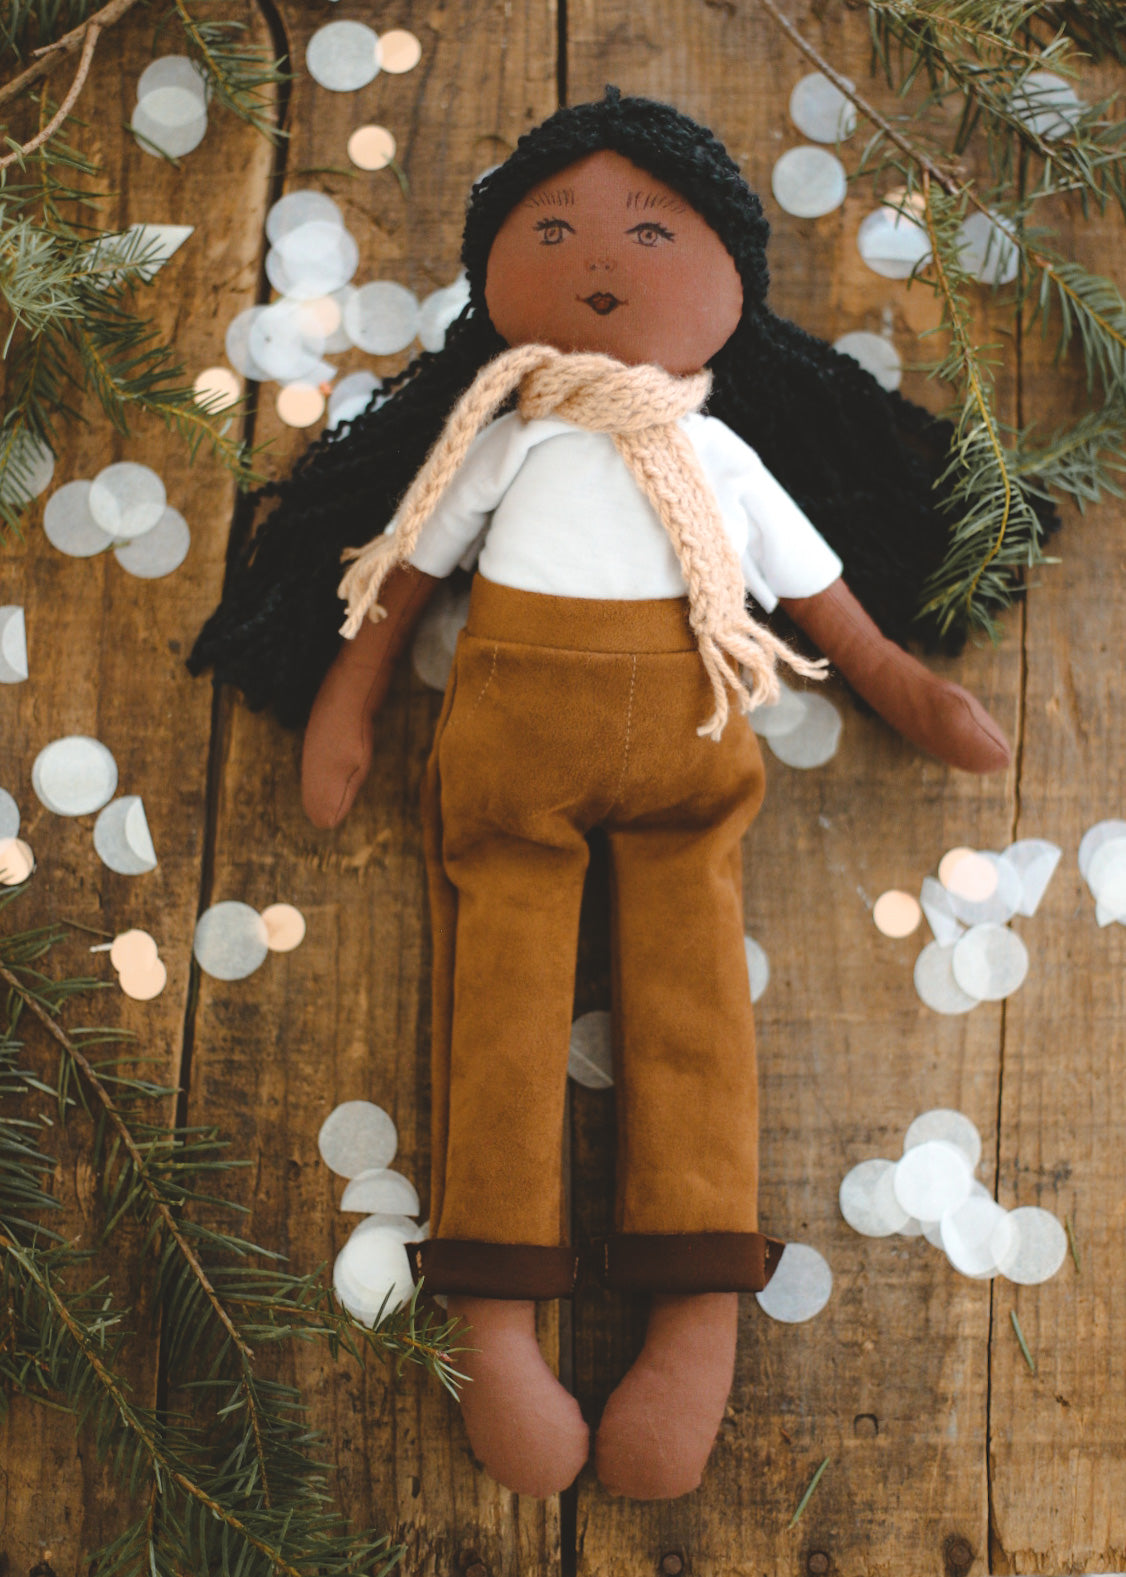 BELLA - Handmade Heirloom Doll